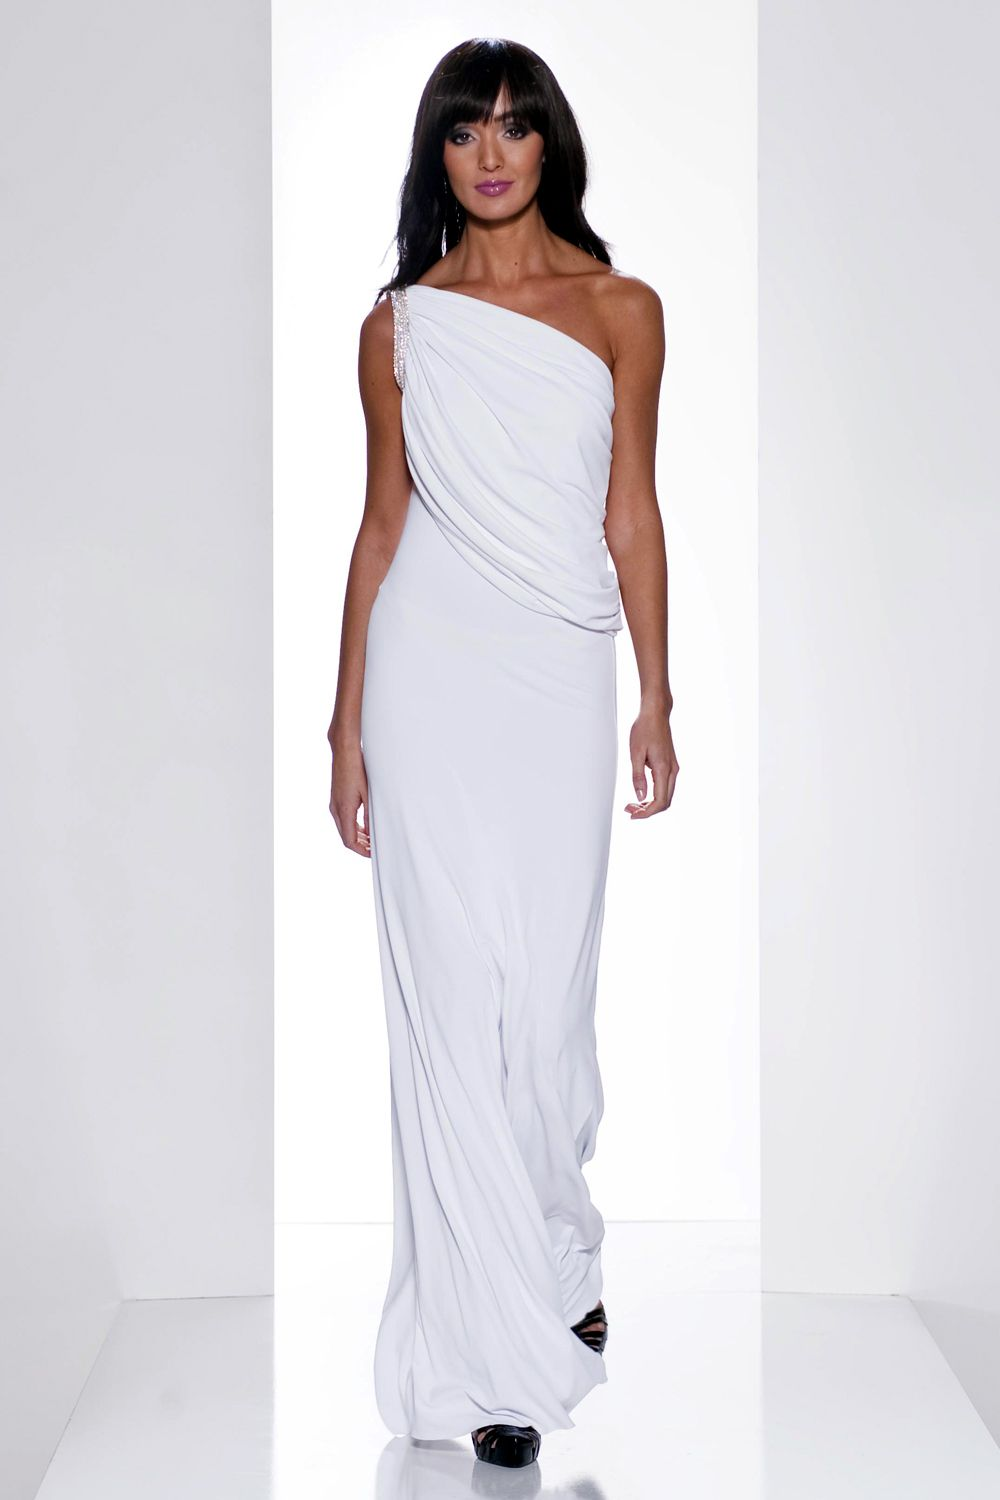 2c469de8c4 GC394  THE REAGAN SWAROVSKI MAXI DRESS